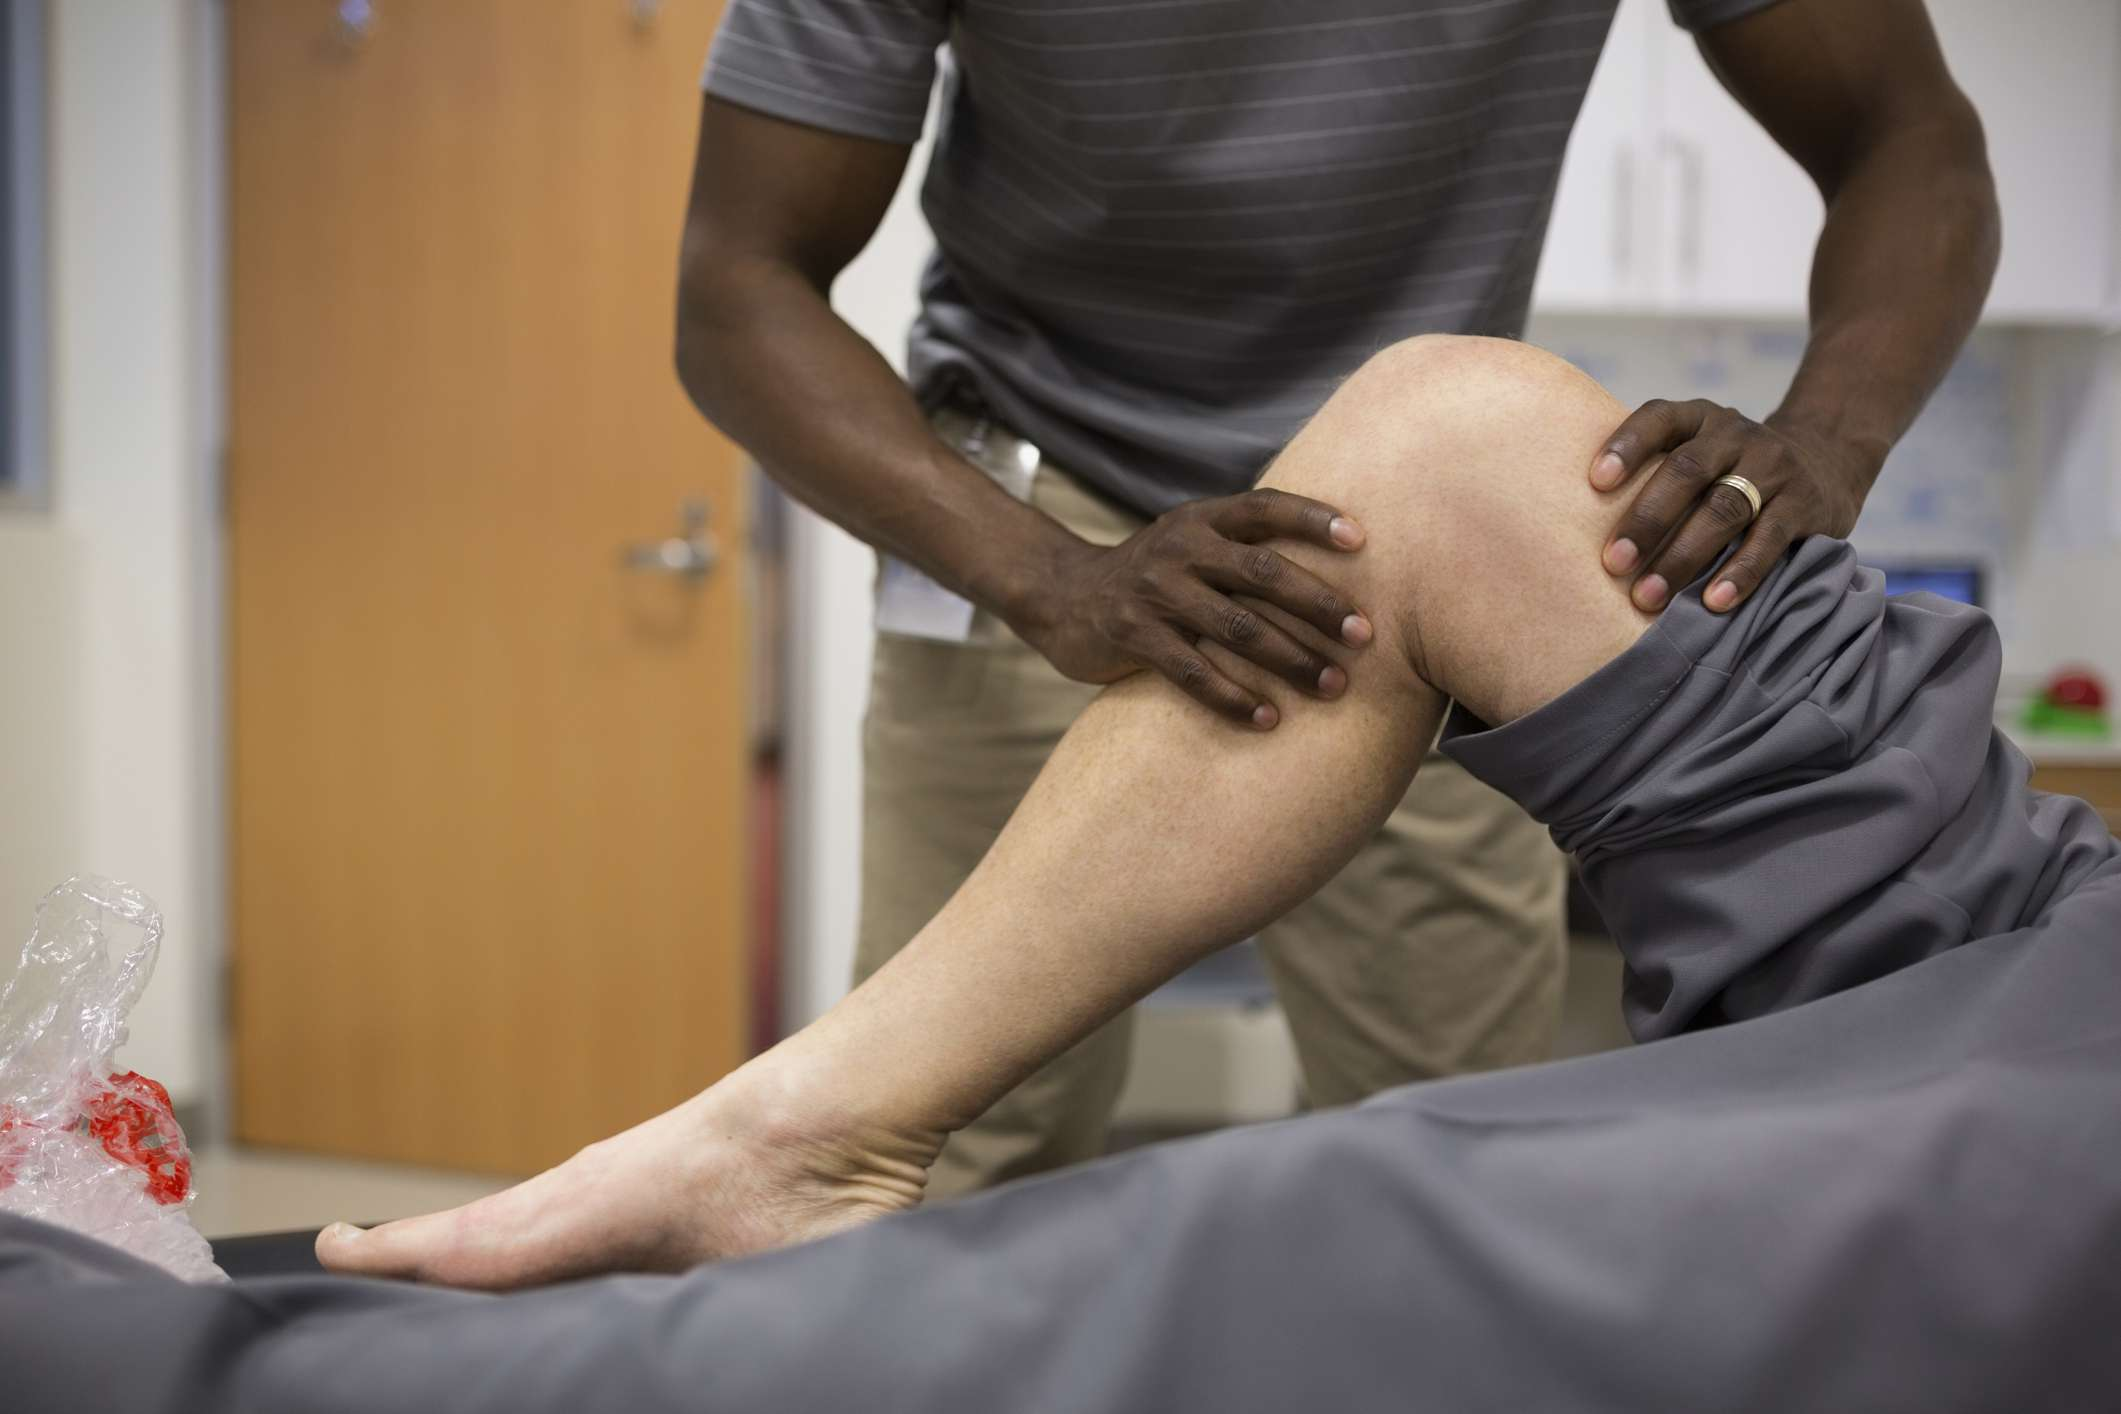 Physical therapist examining a patient's knee.